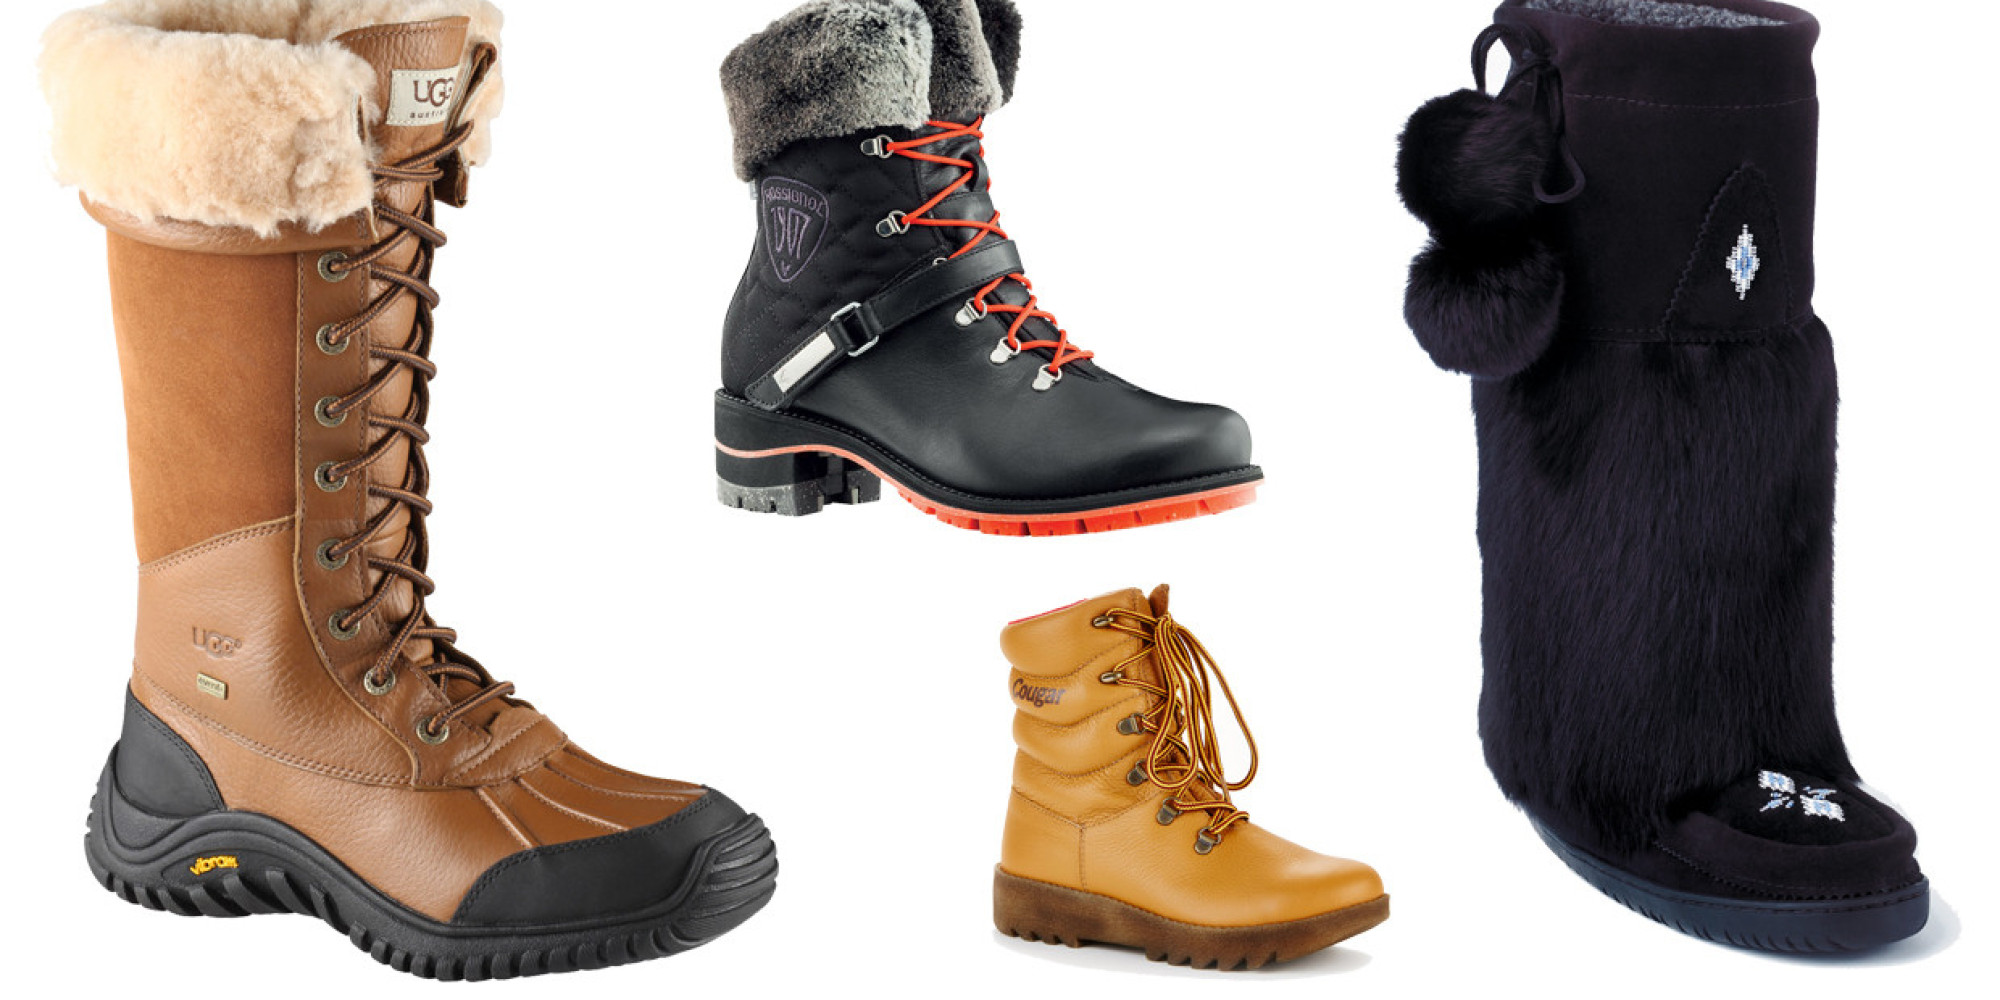 Canada Boots For Winter Pictures to Pin on Pinterest - PinsDaddy